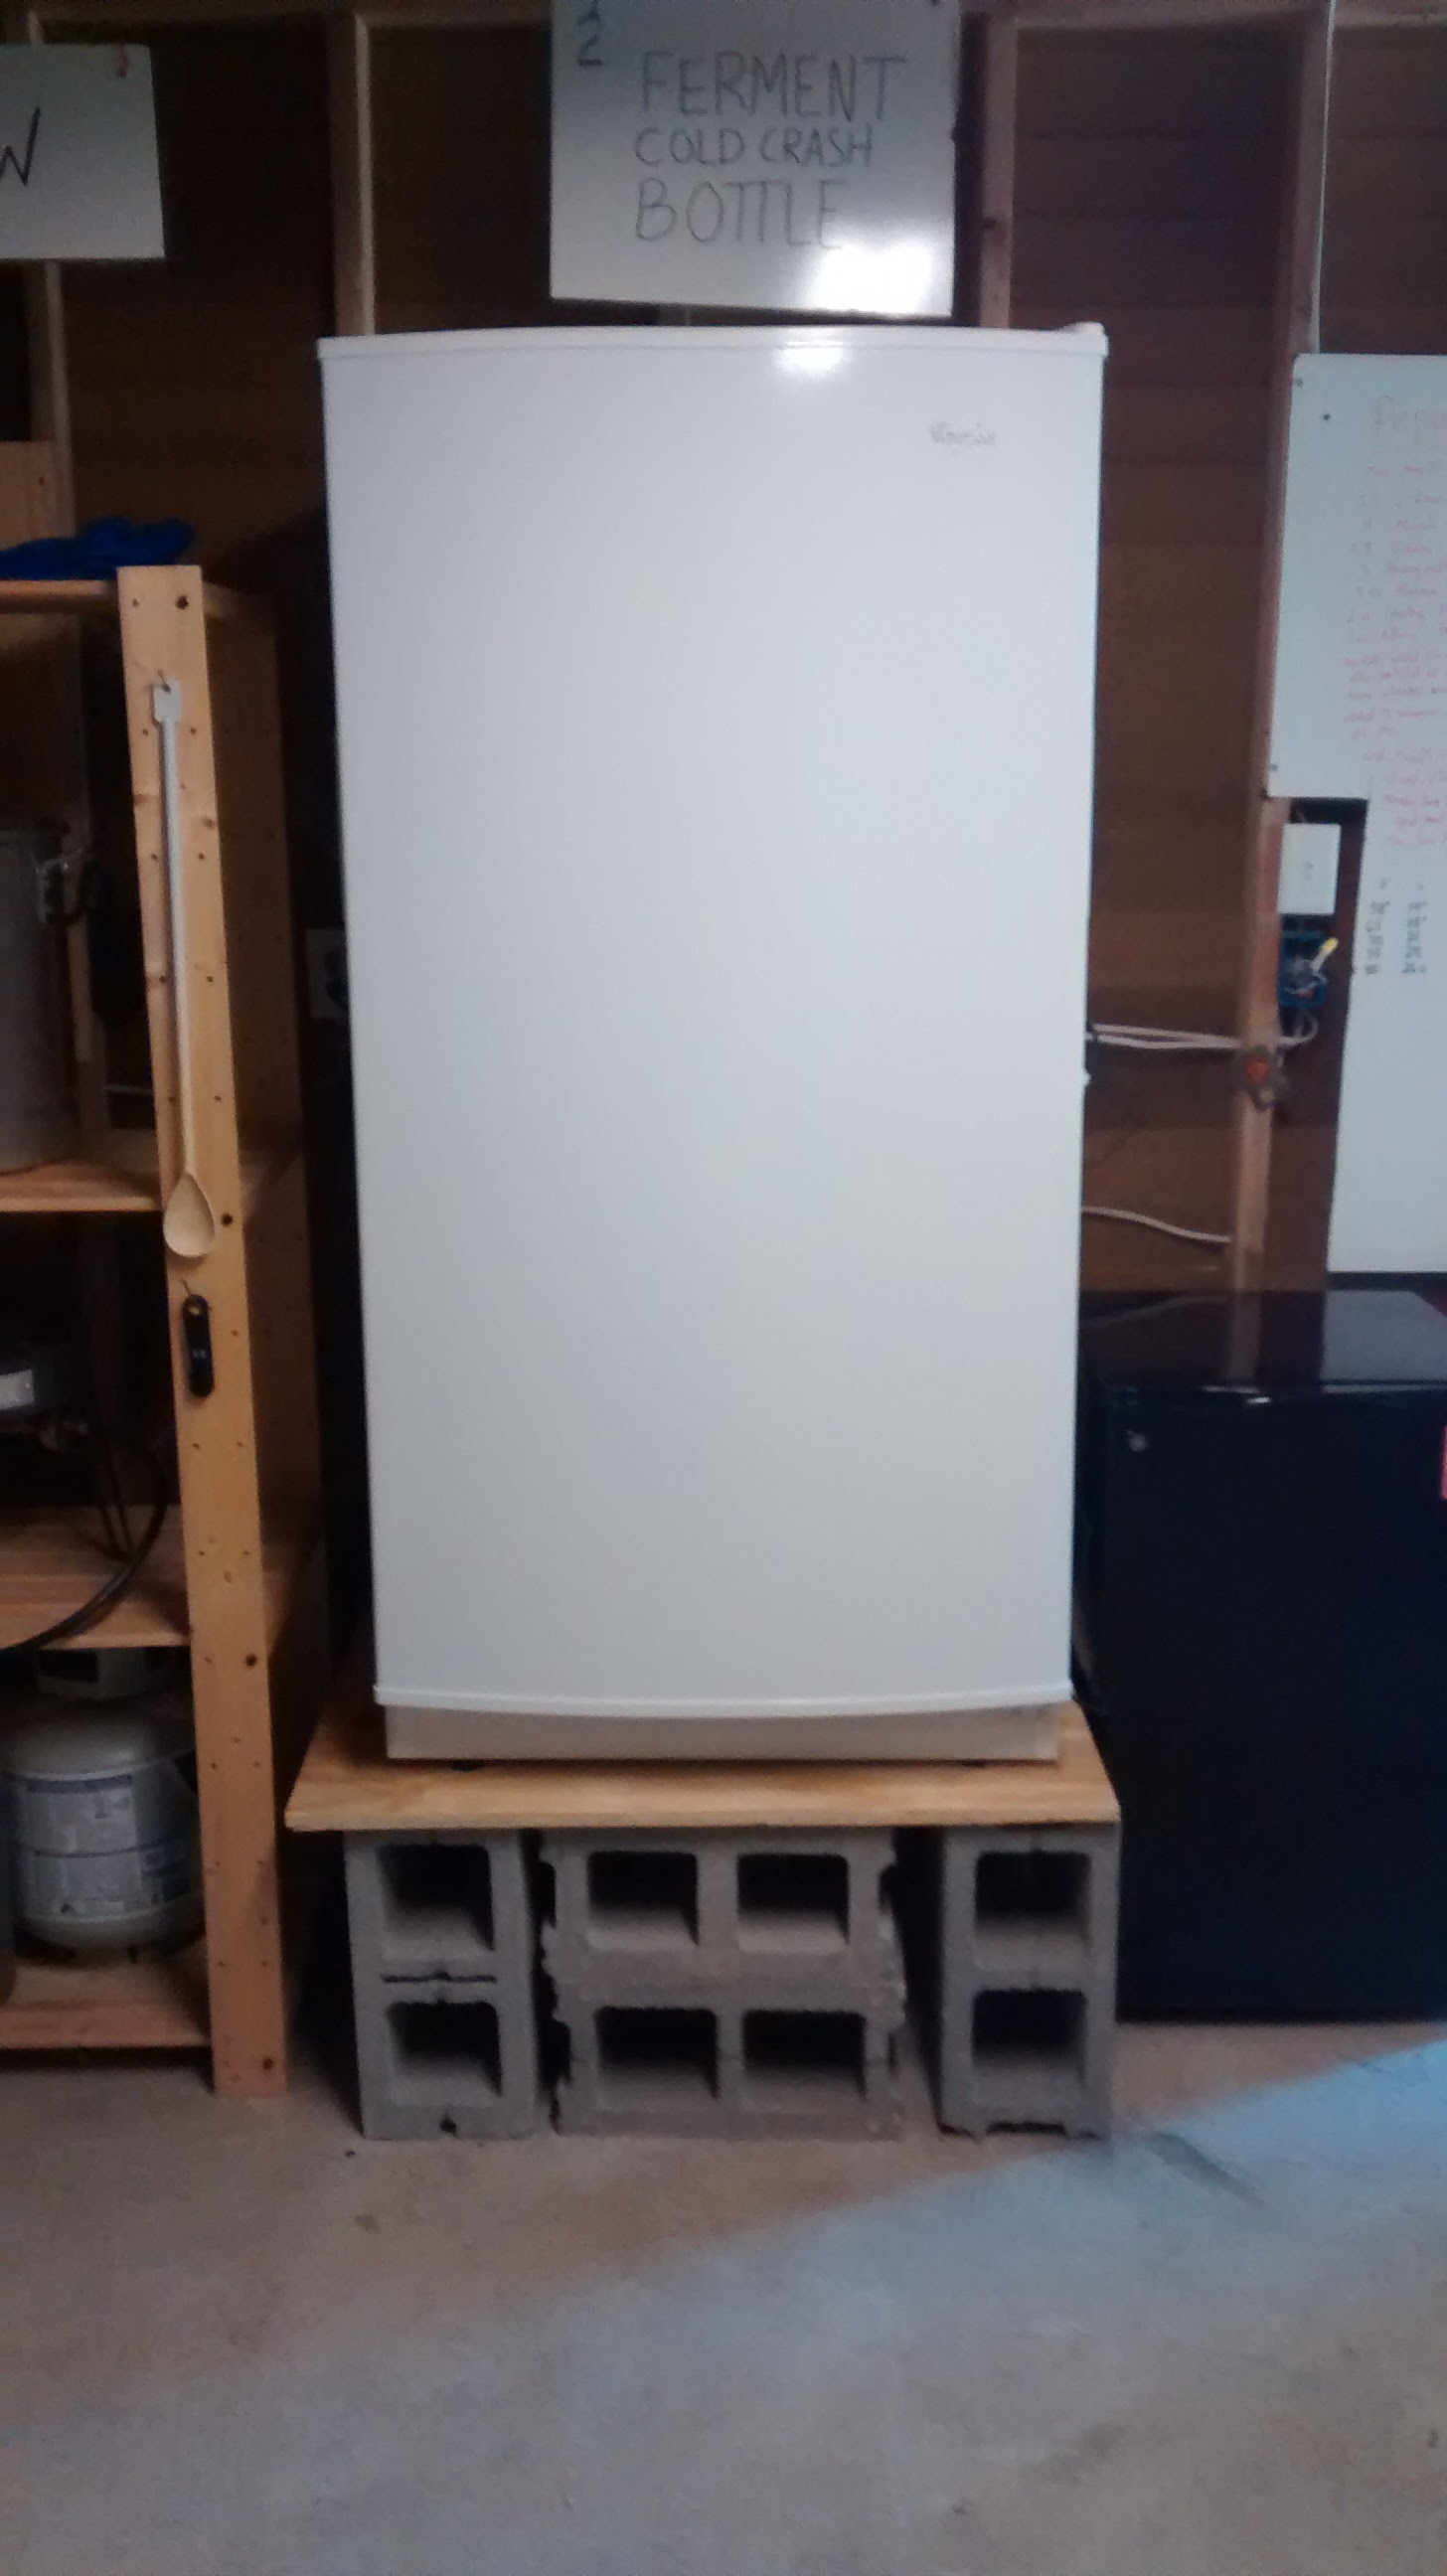 New Upright Freezer: the Solution to Bottling from a